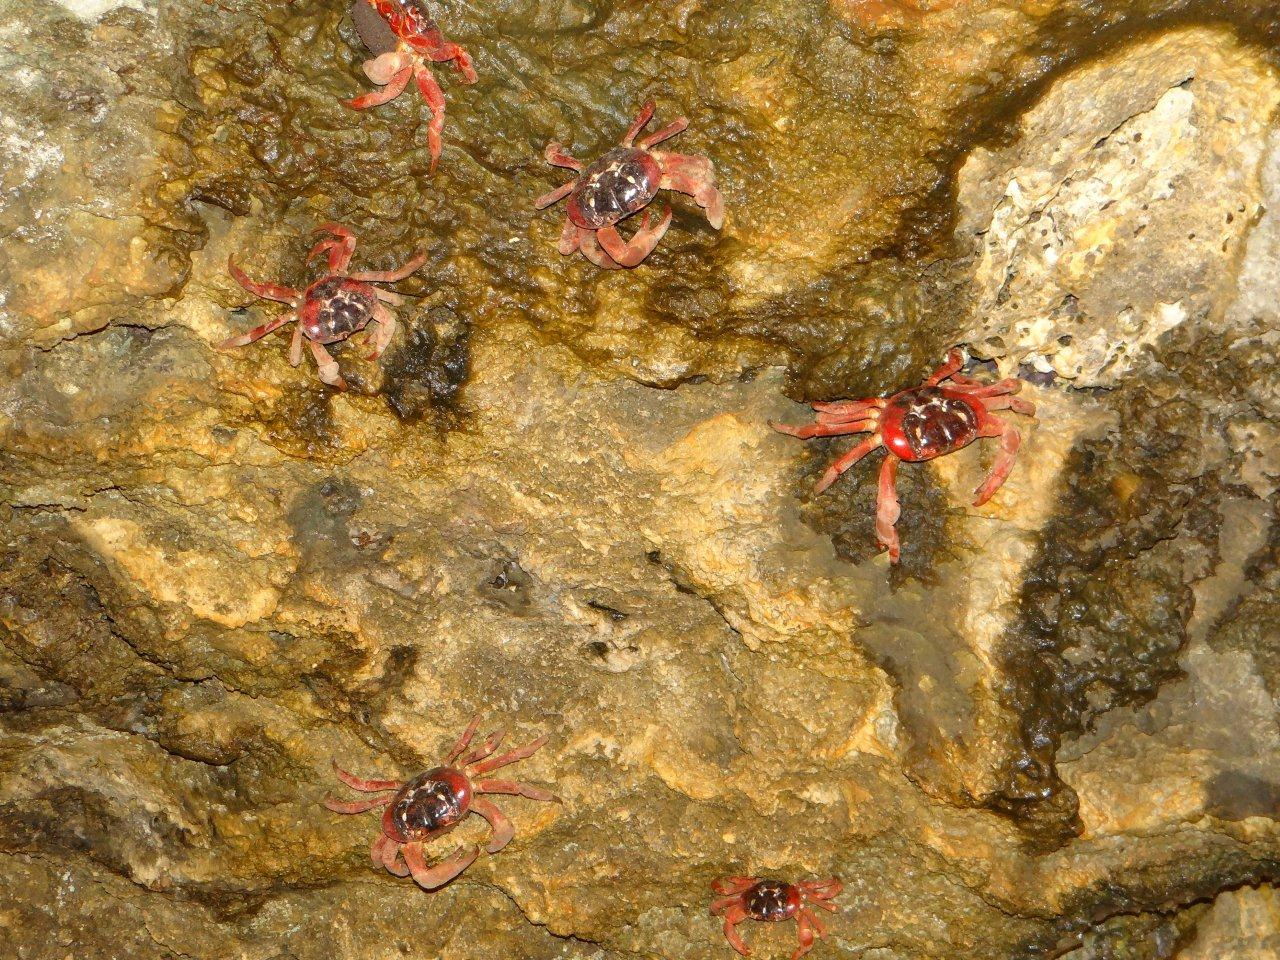 The red crabs commence their annual migration on Christmas Island